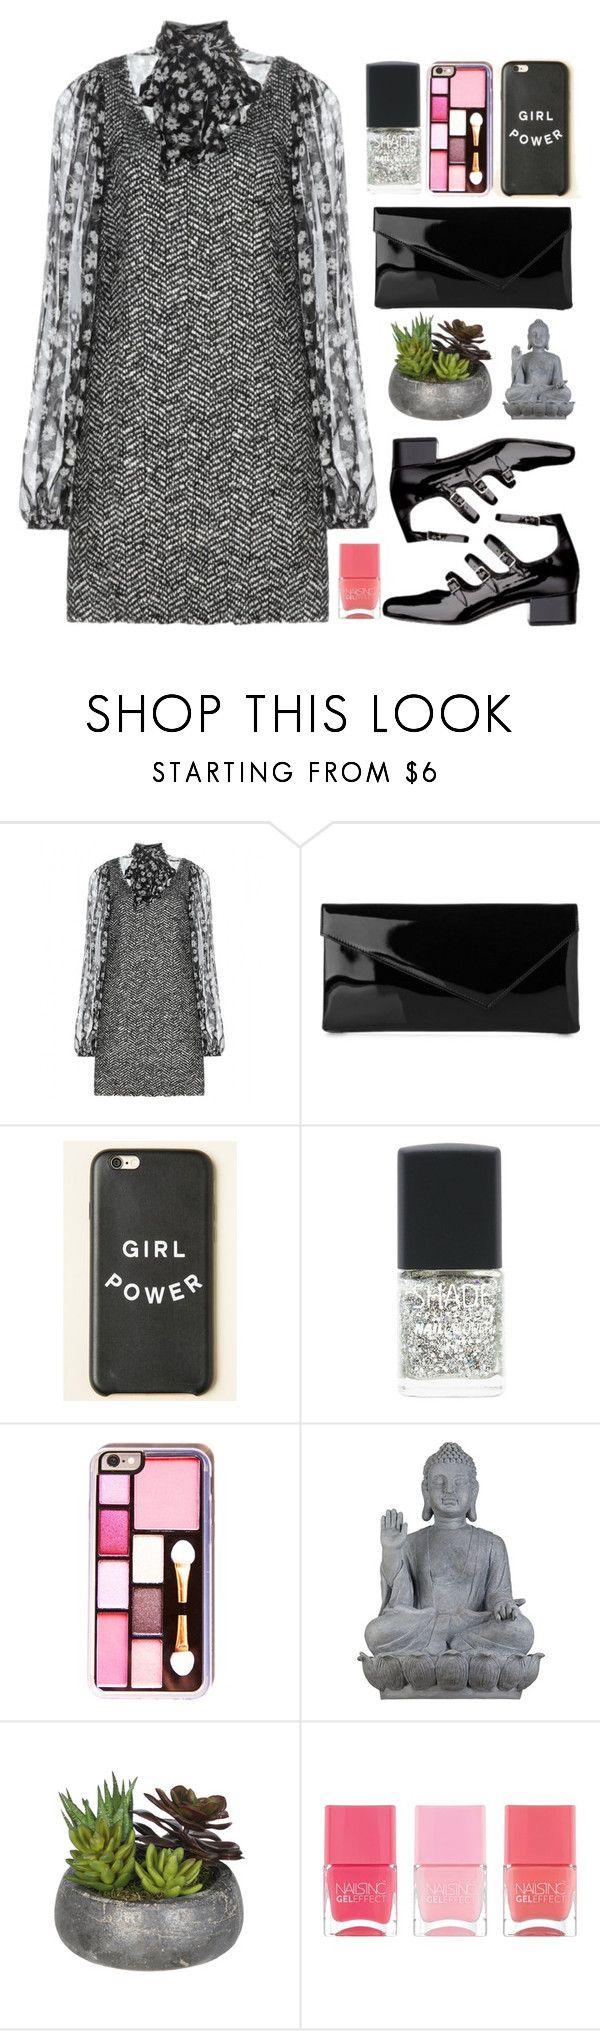 """""""08.09.17-2"""" by malenafashion27 ❤ liked on Polyvore featuring Dolce&Gabbana, L.K.Bennett, Lane Bryant, Universal Lighting and Decor and Nails Inc."""